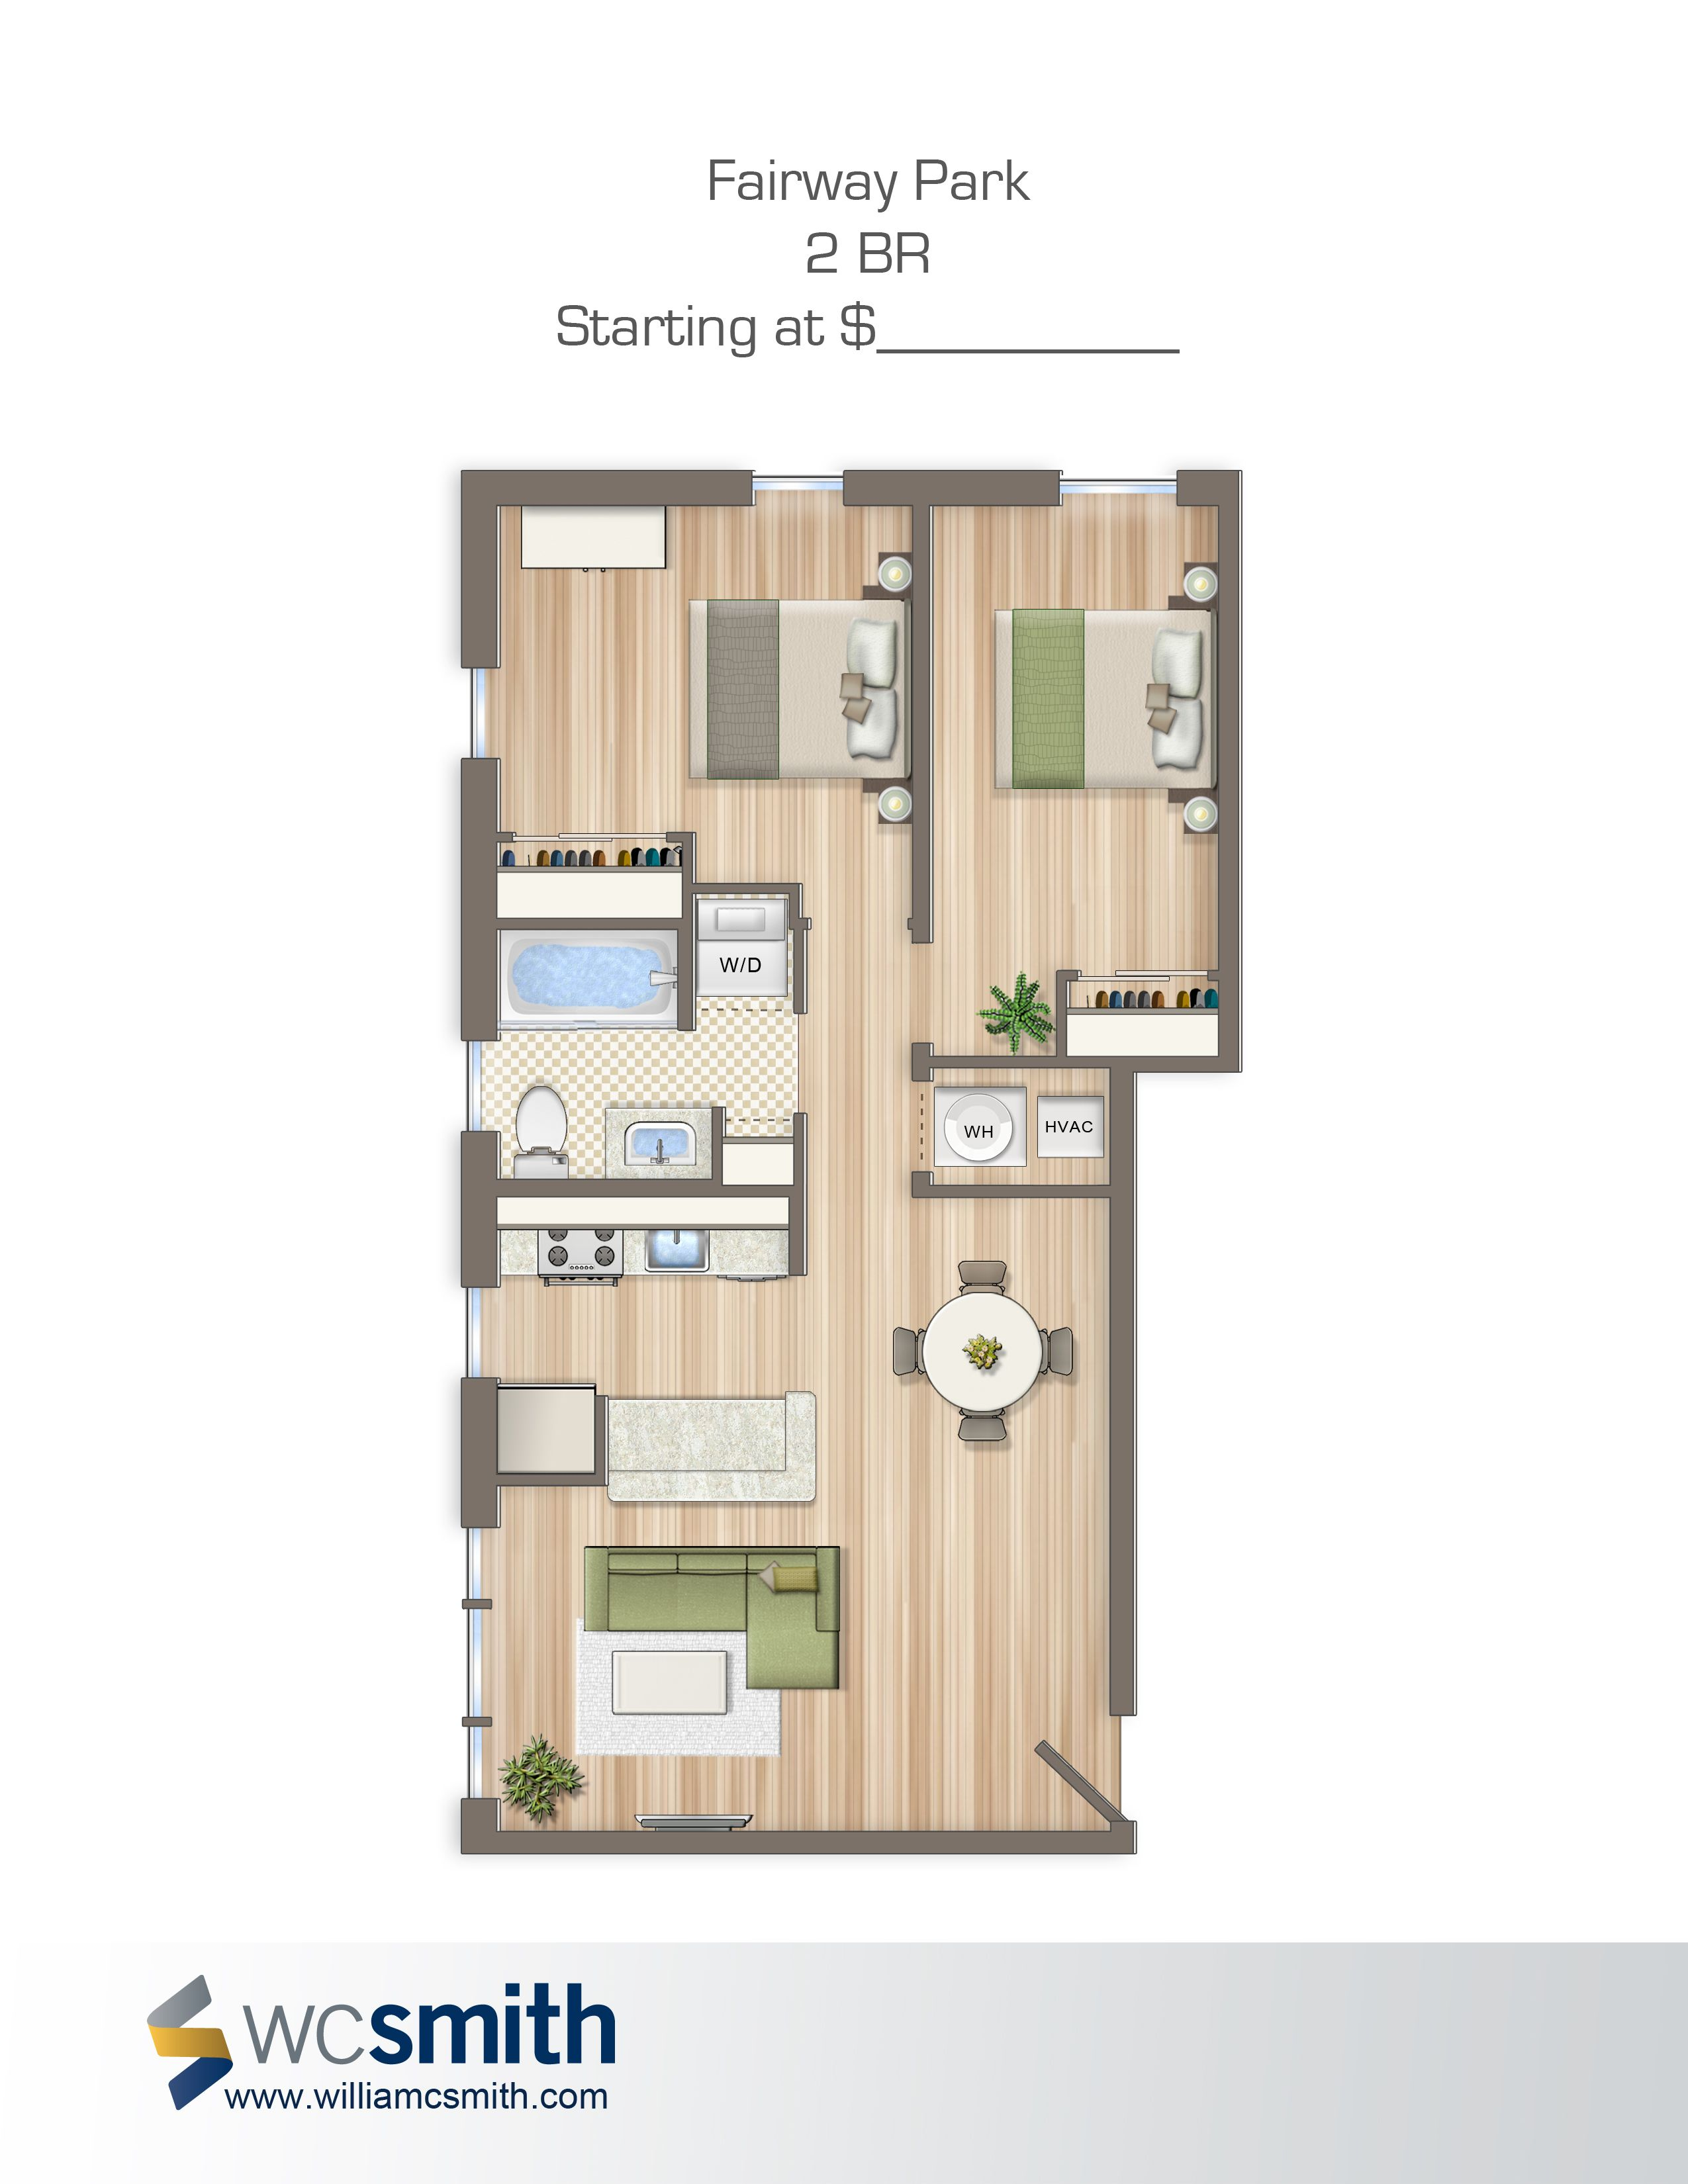 Two bedroom floor plan fairway park in northeast washington dc wc smith apartments h st for 2 bedroom apartments washington dc